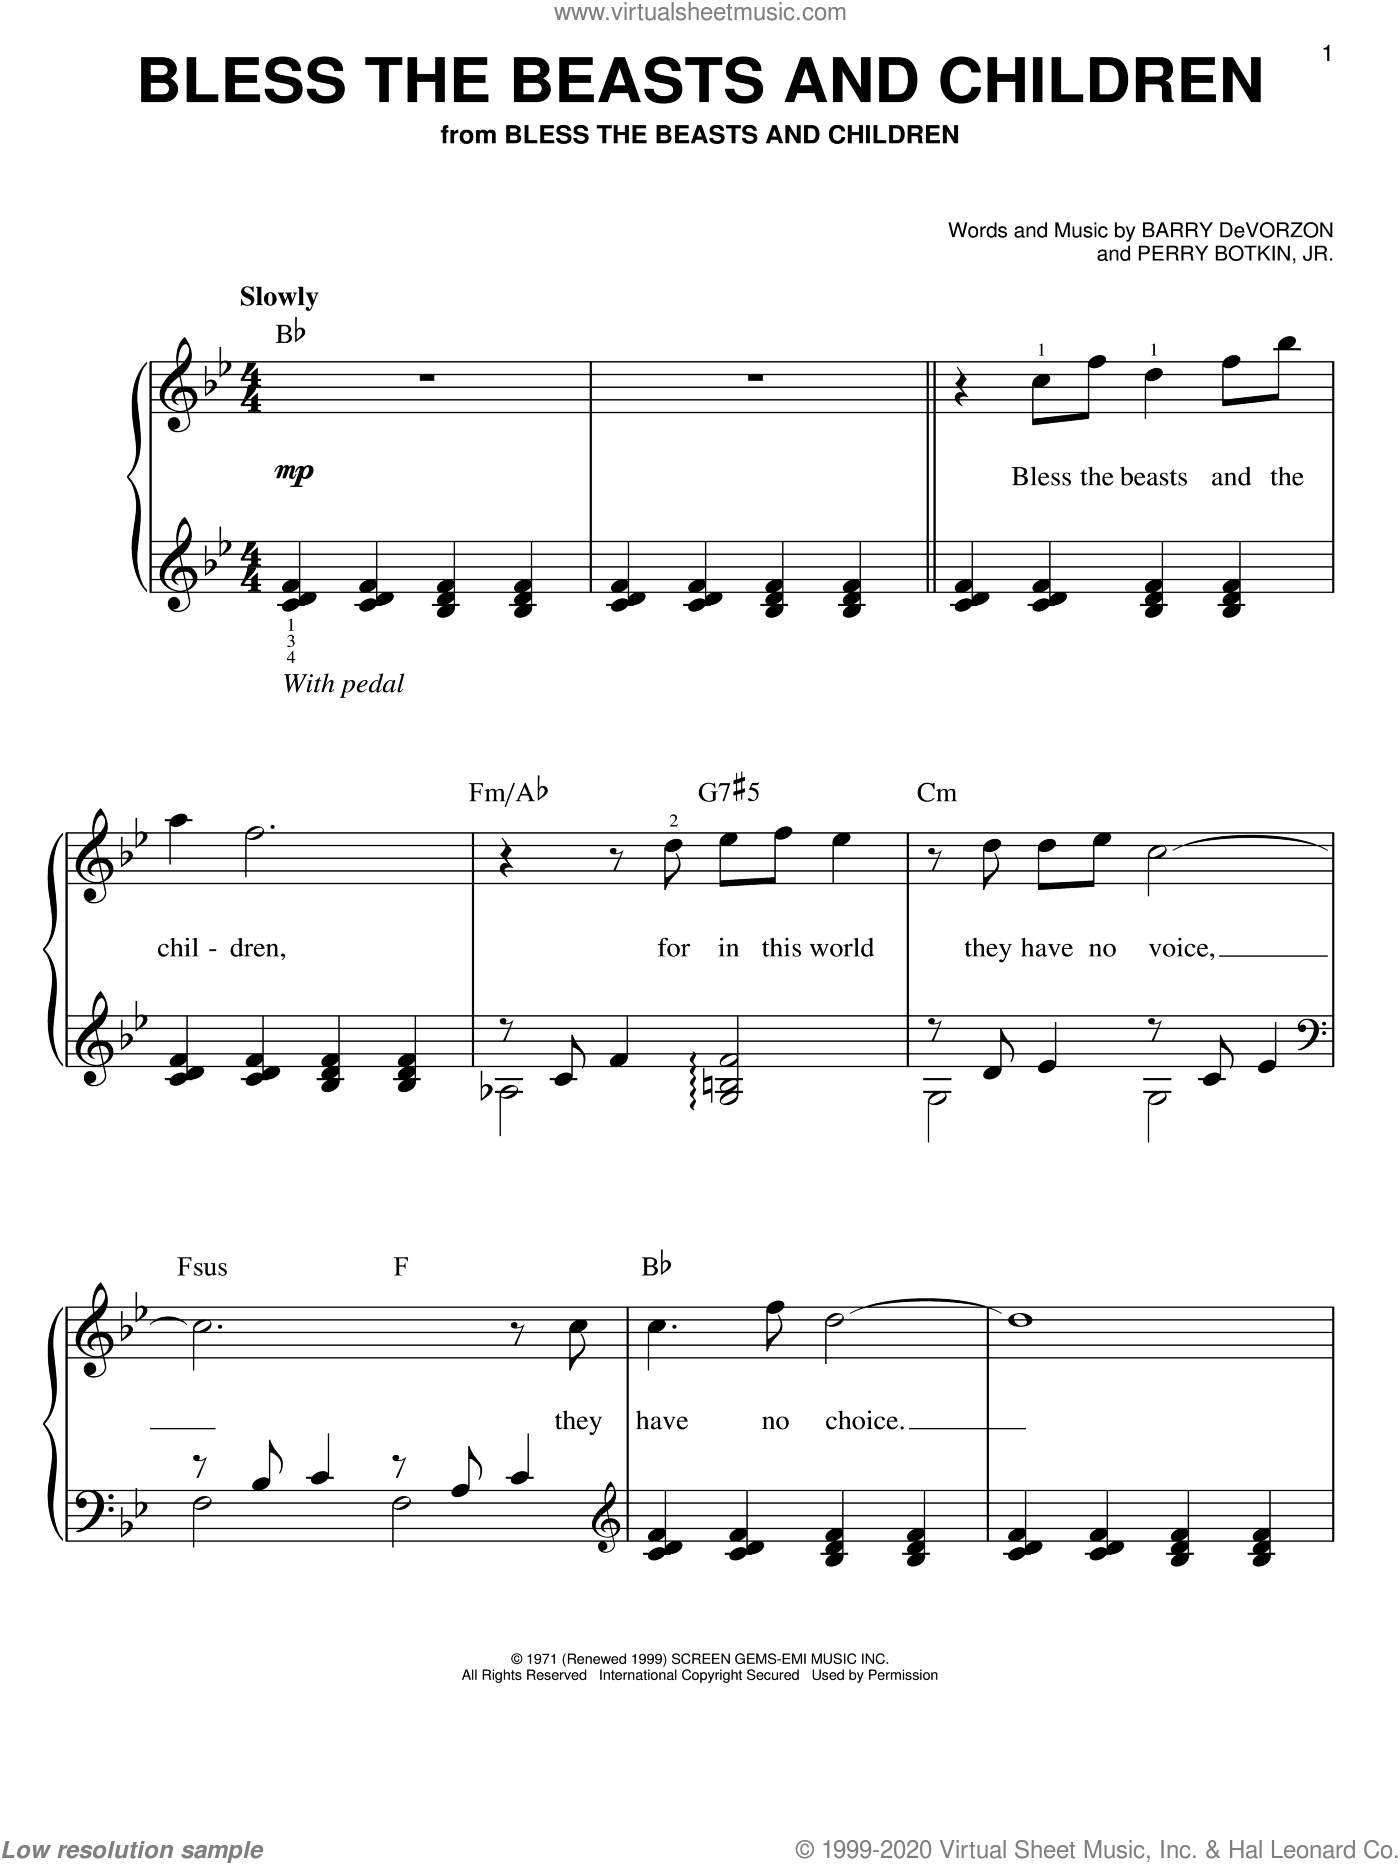 Bless The Beasts And Children sheet music for piano solo (chords) by Perry Botkin, Jr.